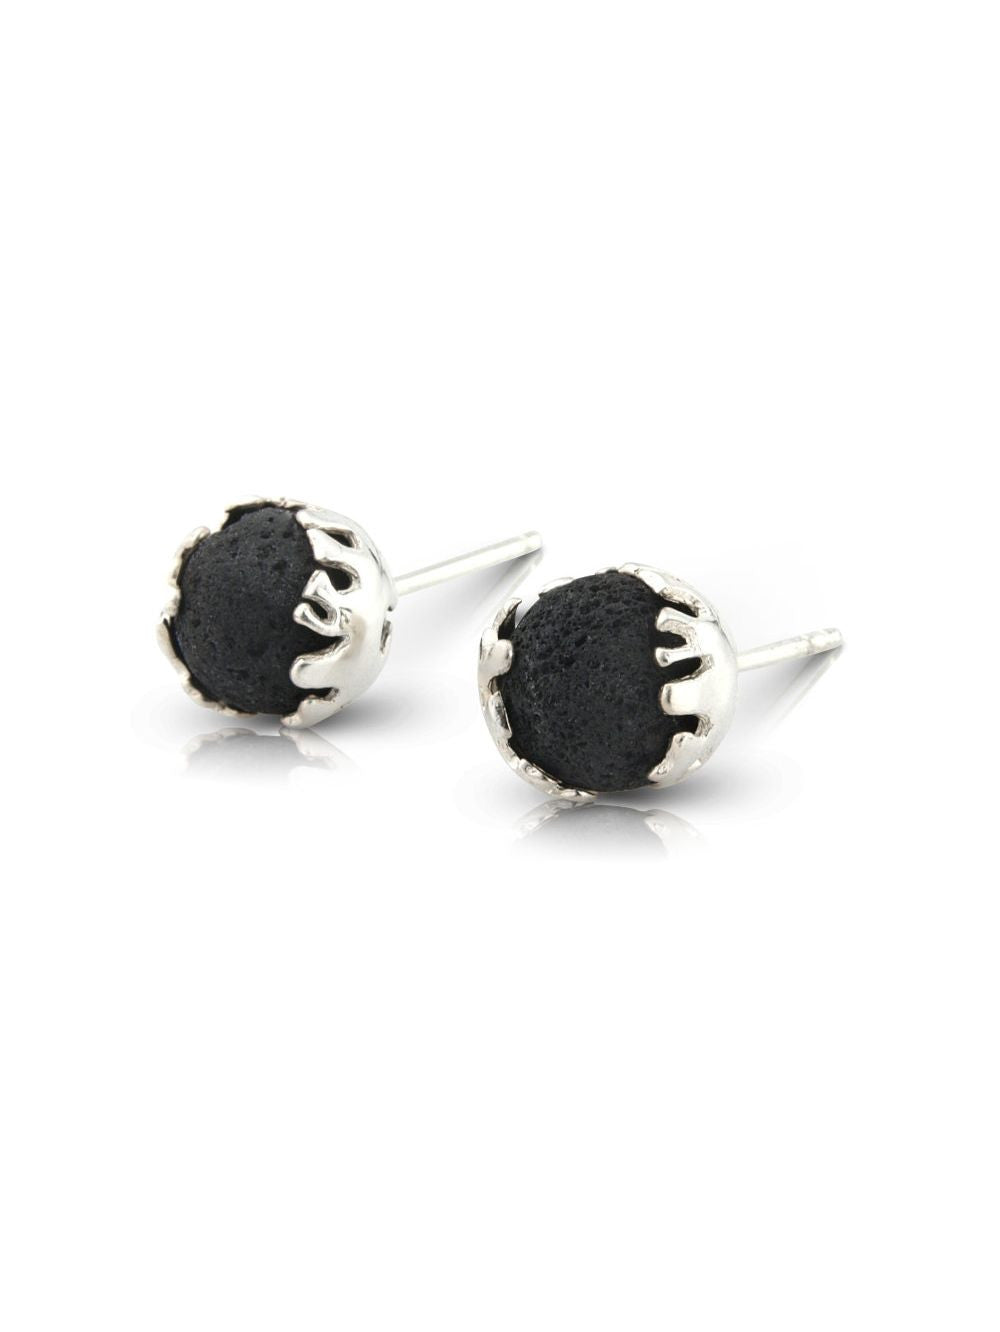 Lava Stone Silver Ear Studs - Earth Inspired Jewellery